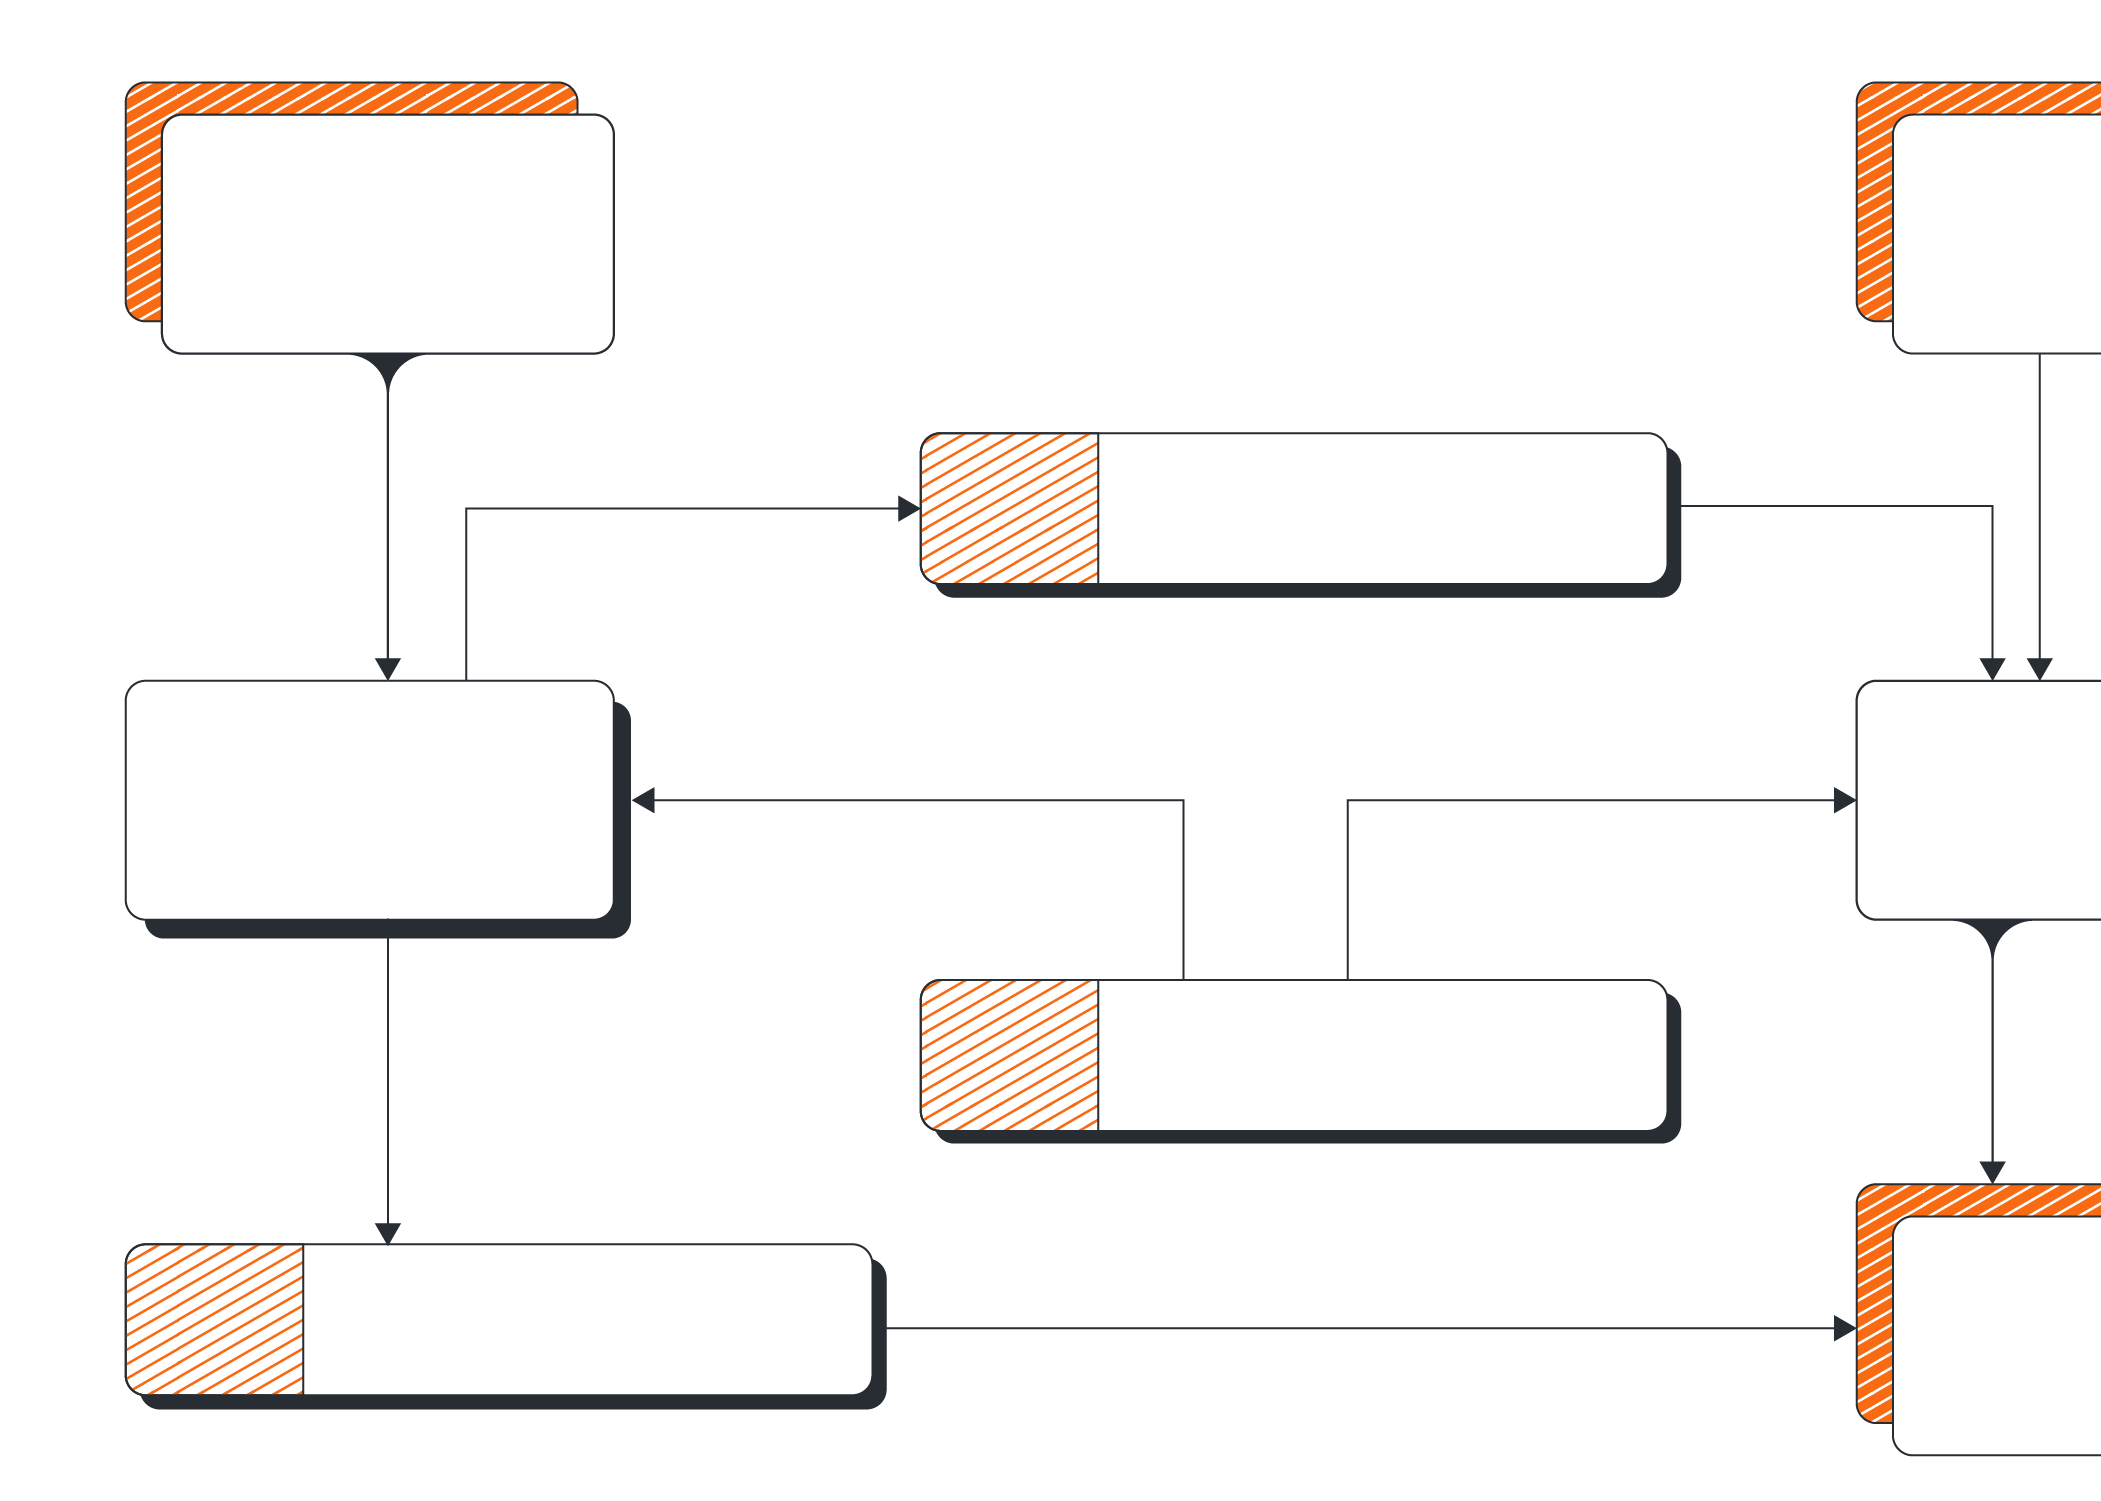 Lucidchart data flow diagram software